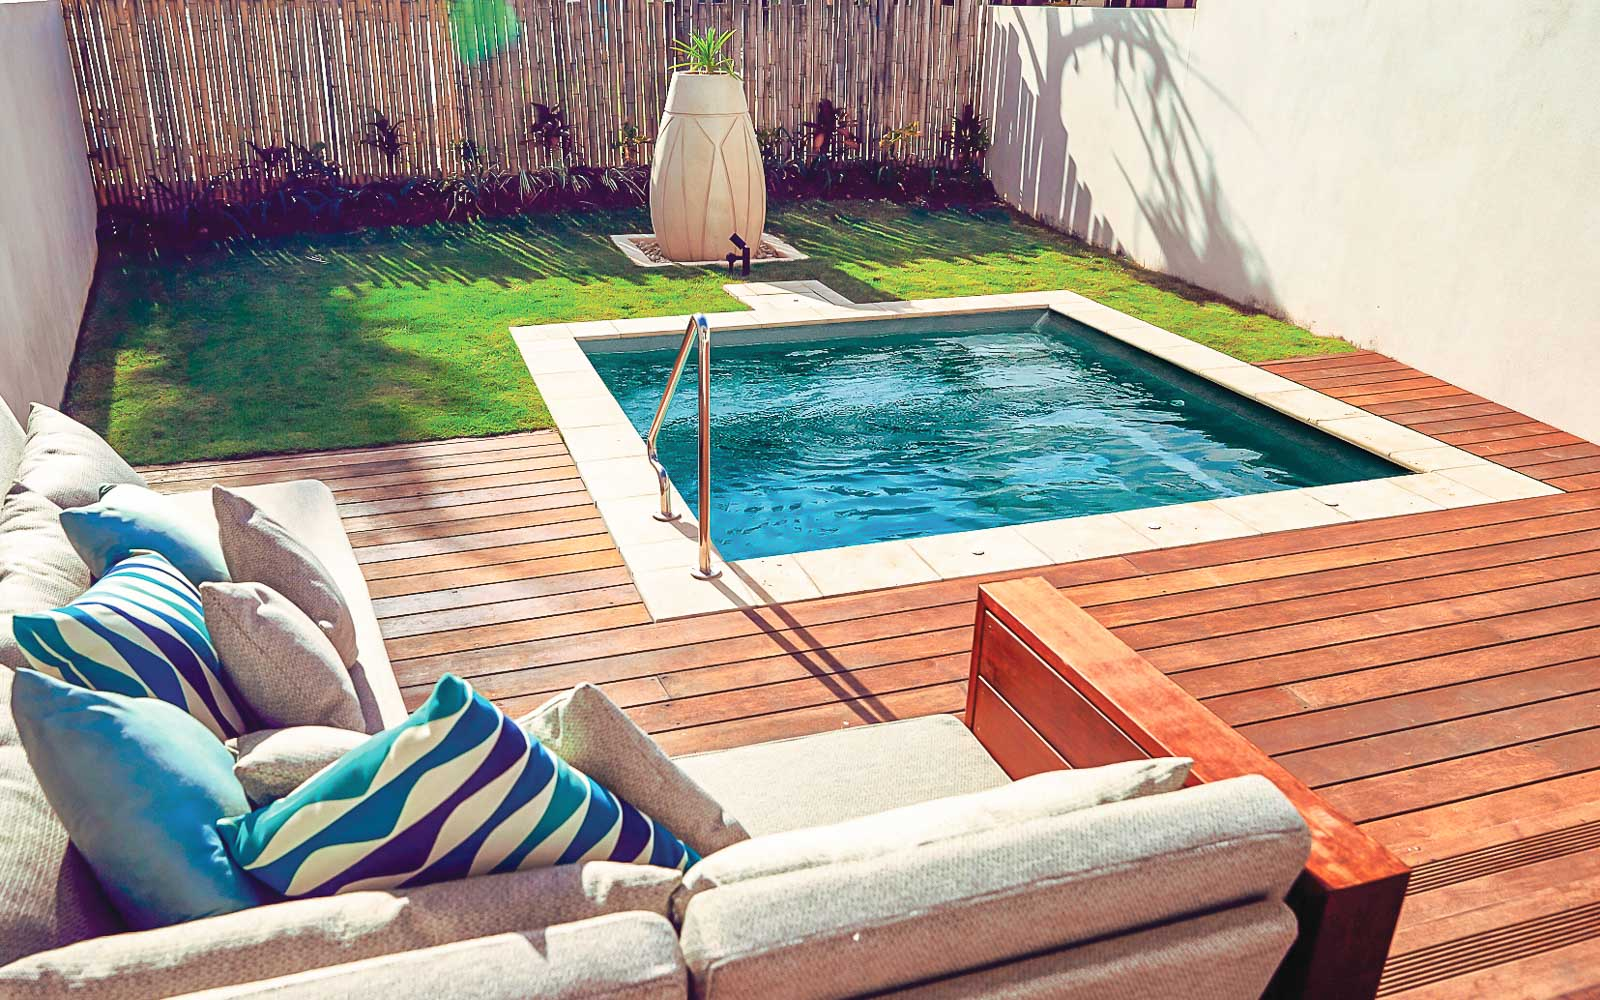 a plunge pool is one of the swimming pool trends for 2021